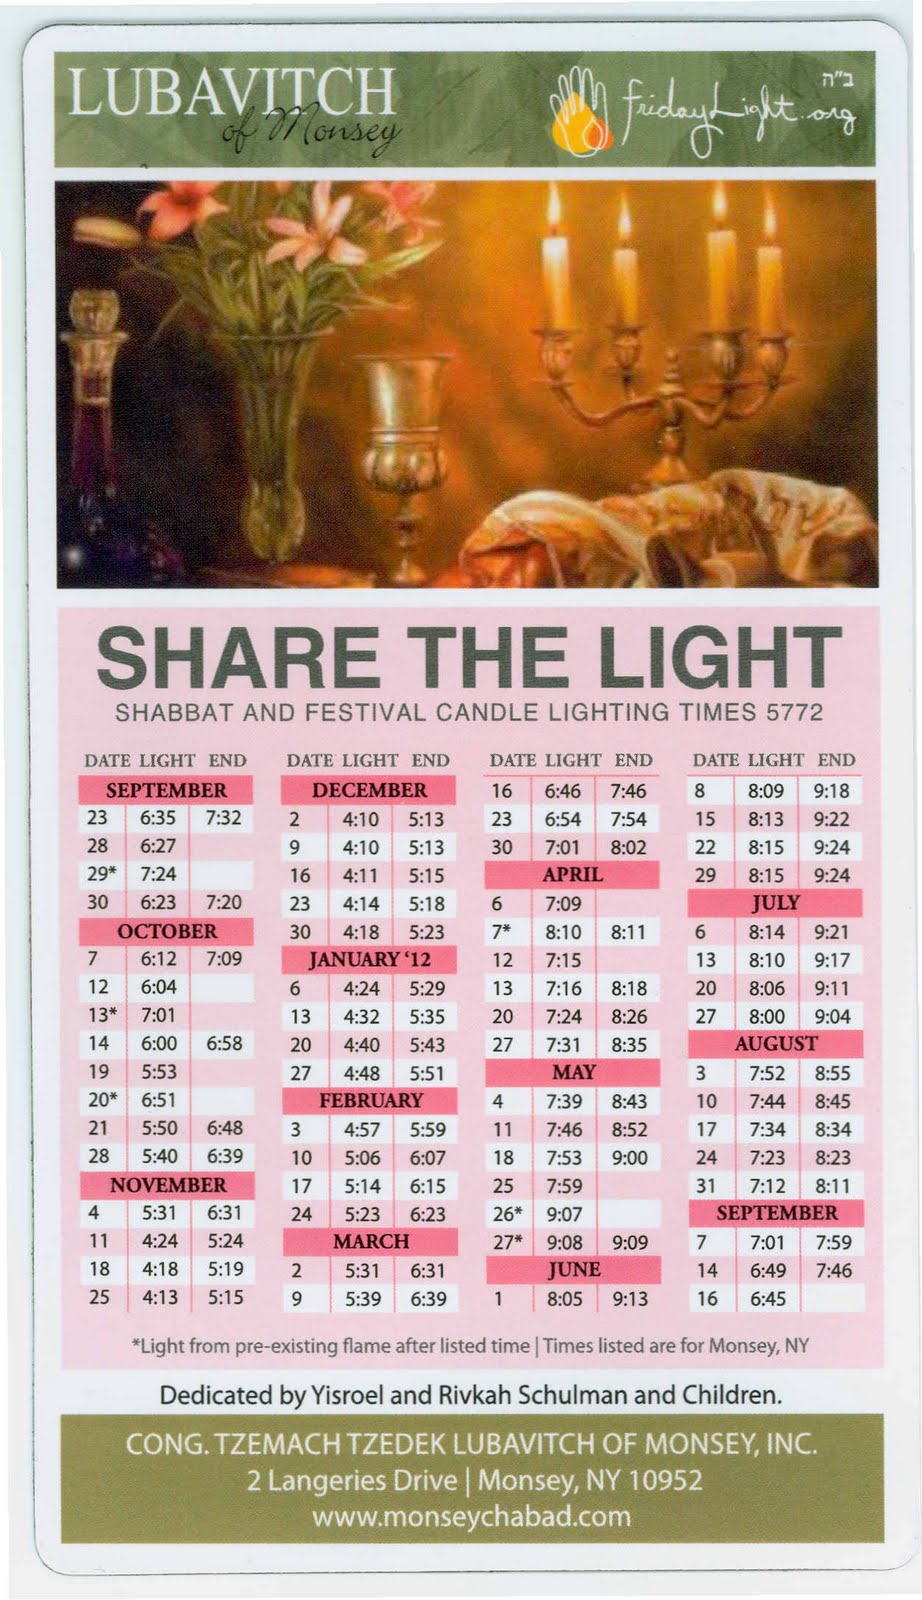 chabad of greater monsey magnet with candle lighting times mailed to community